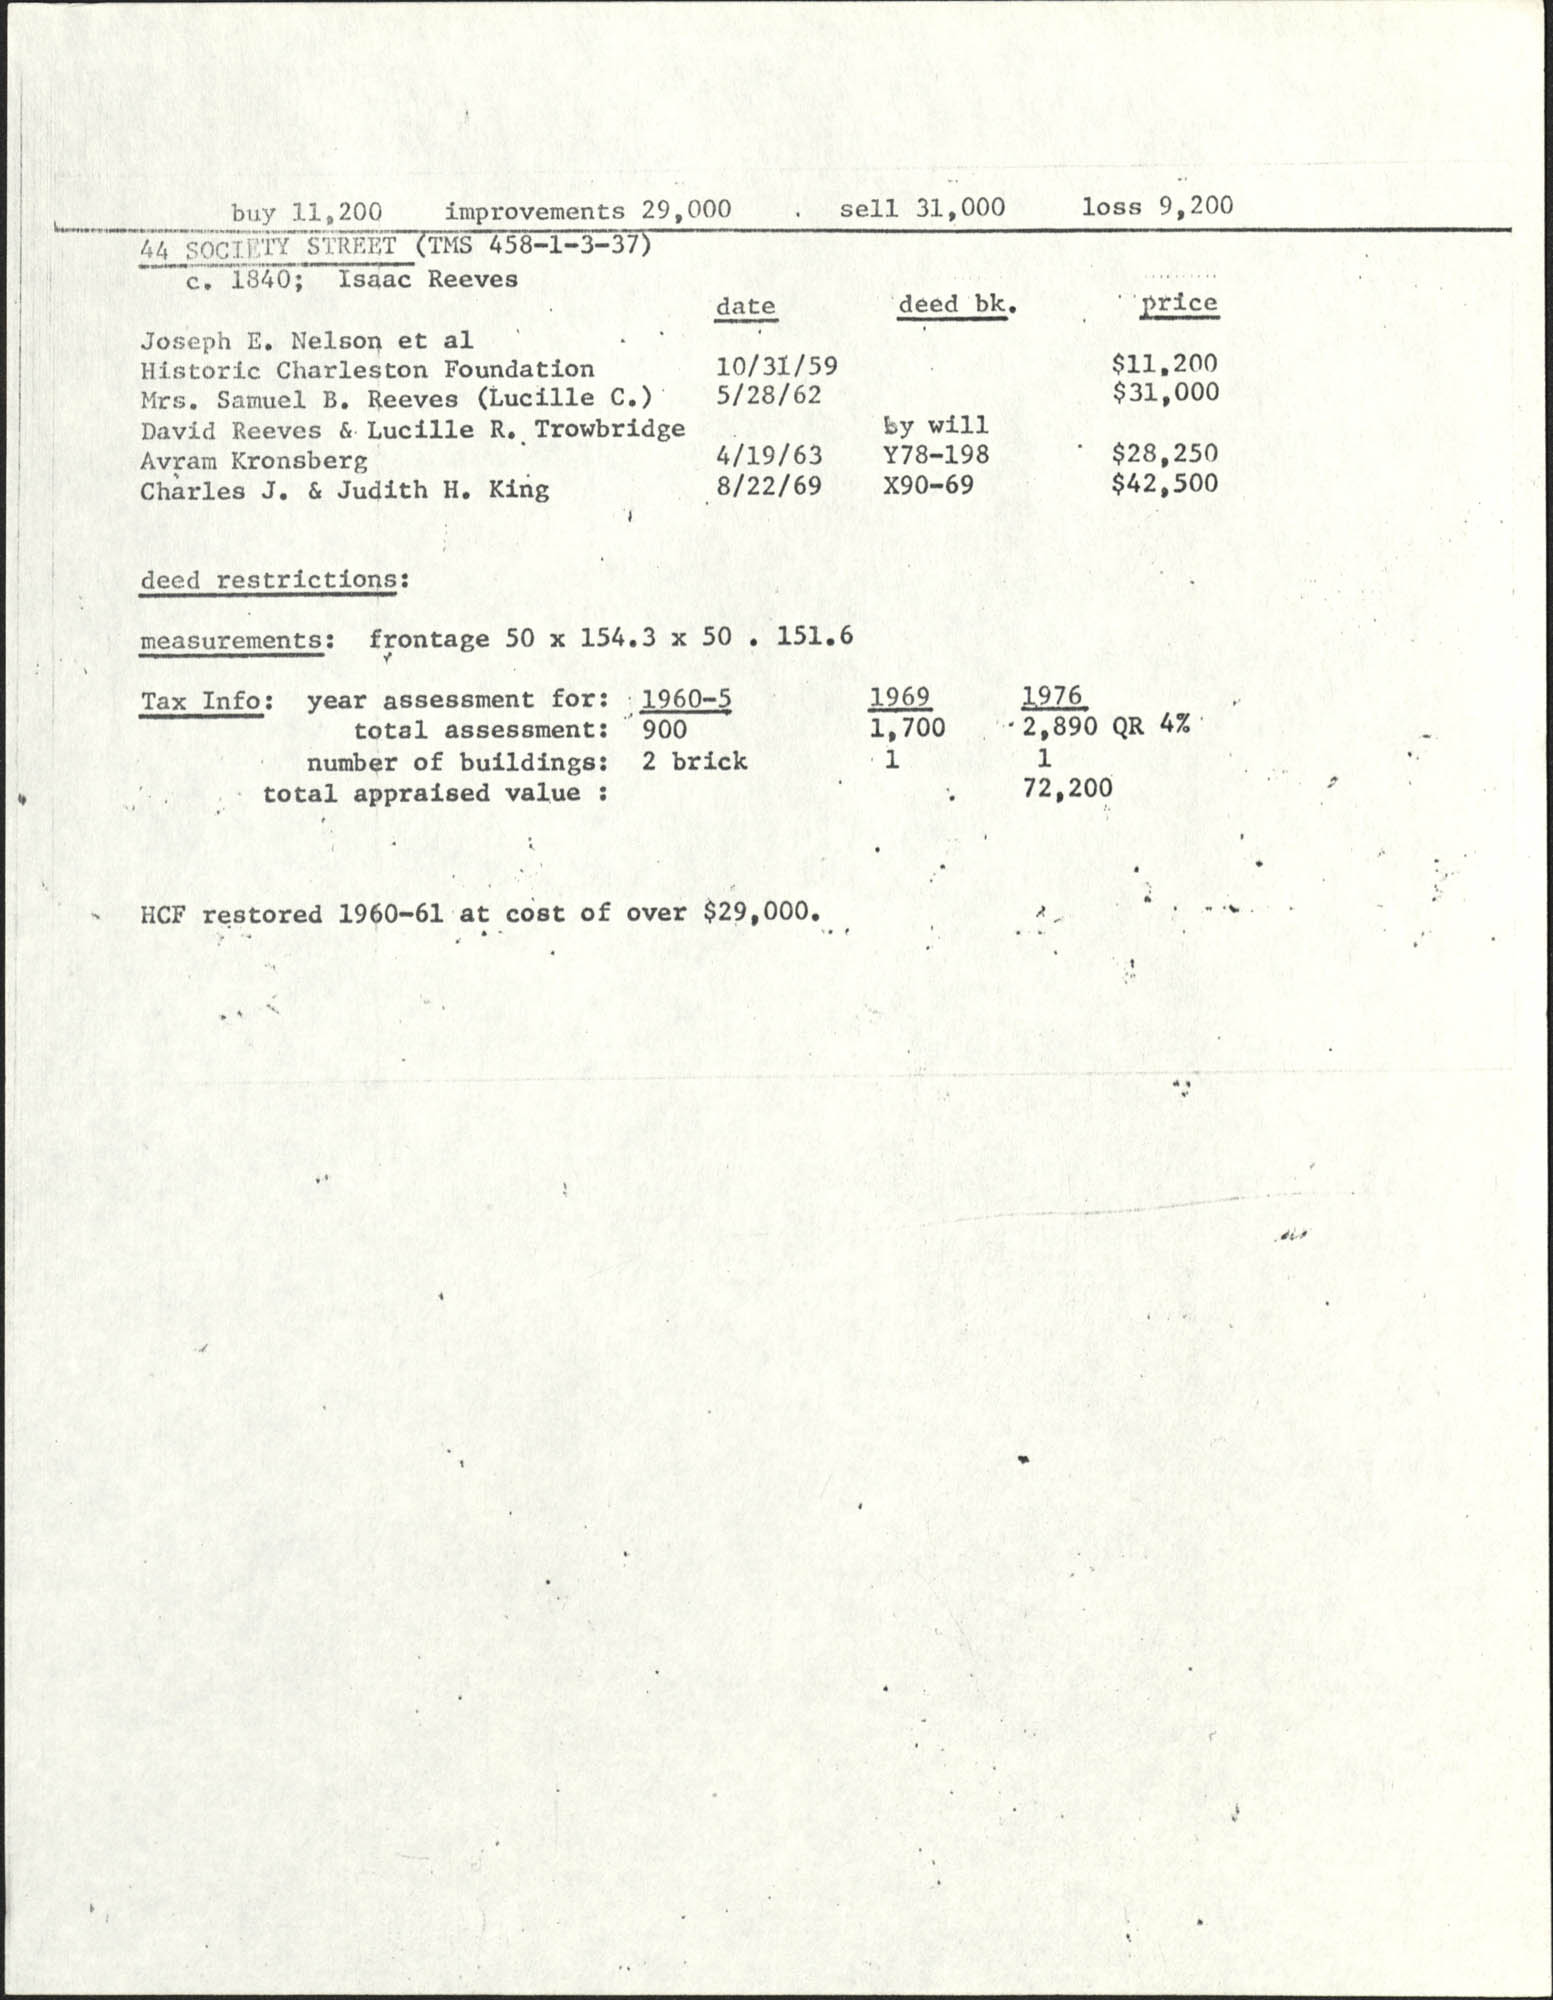 Deed records for 44 Society Street